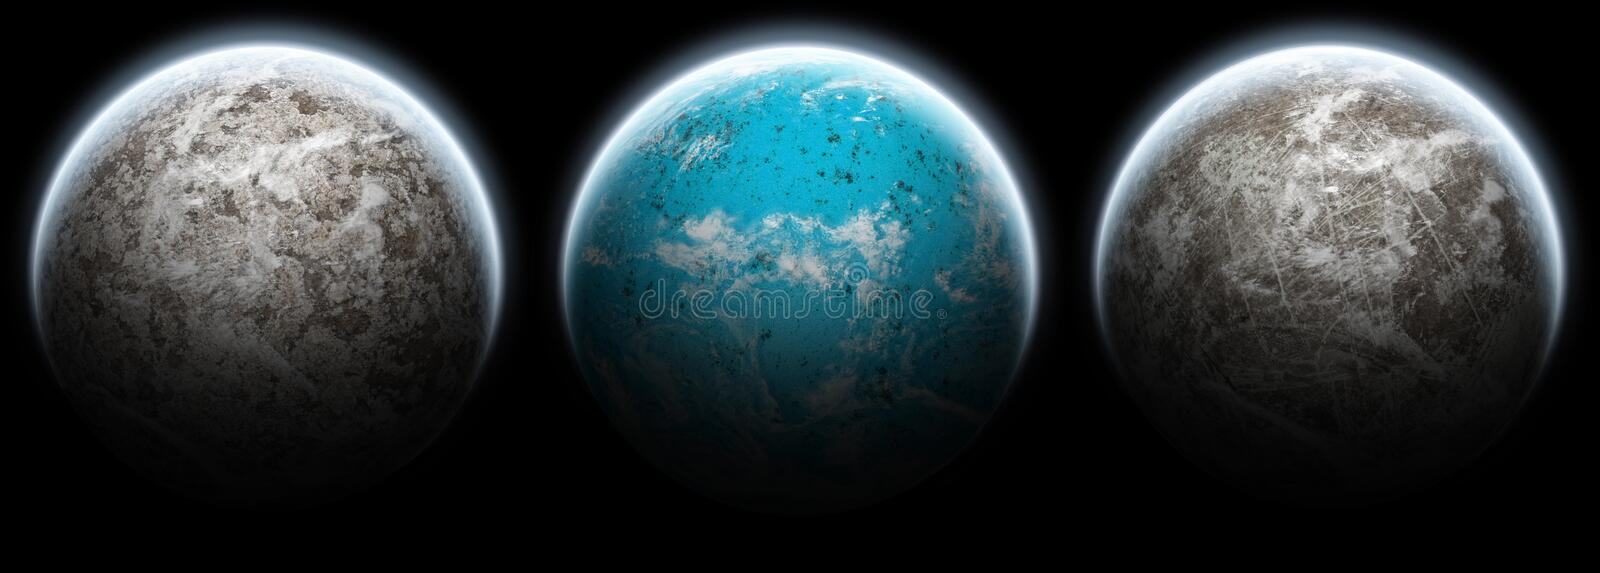 Set of 3 planets moons on a black background stock photo